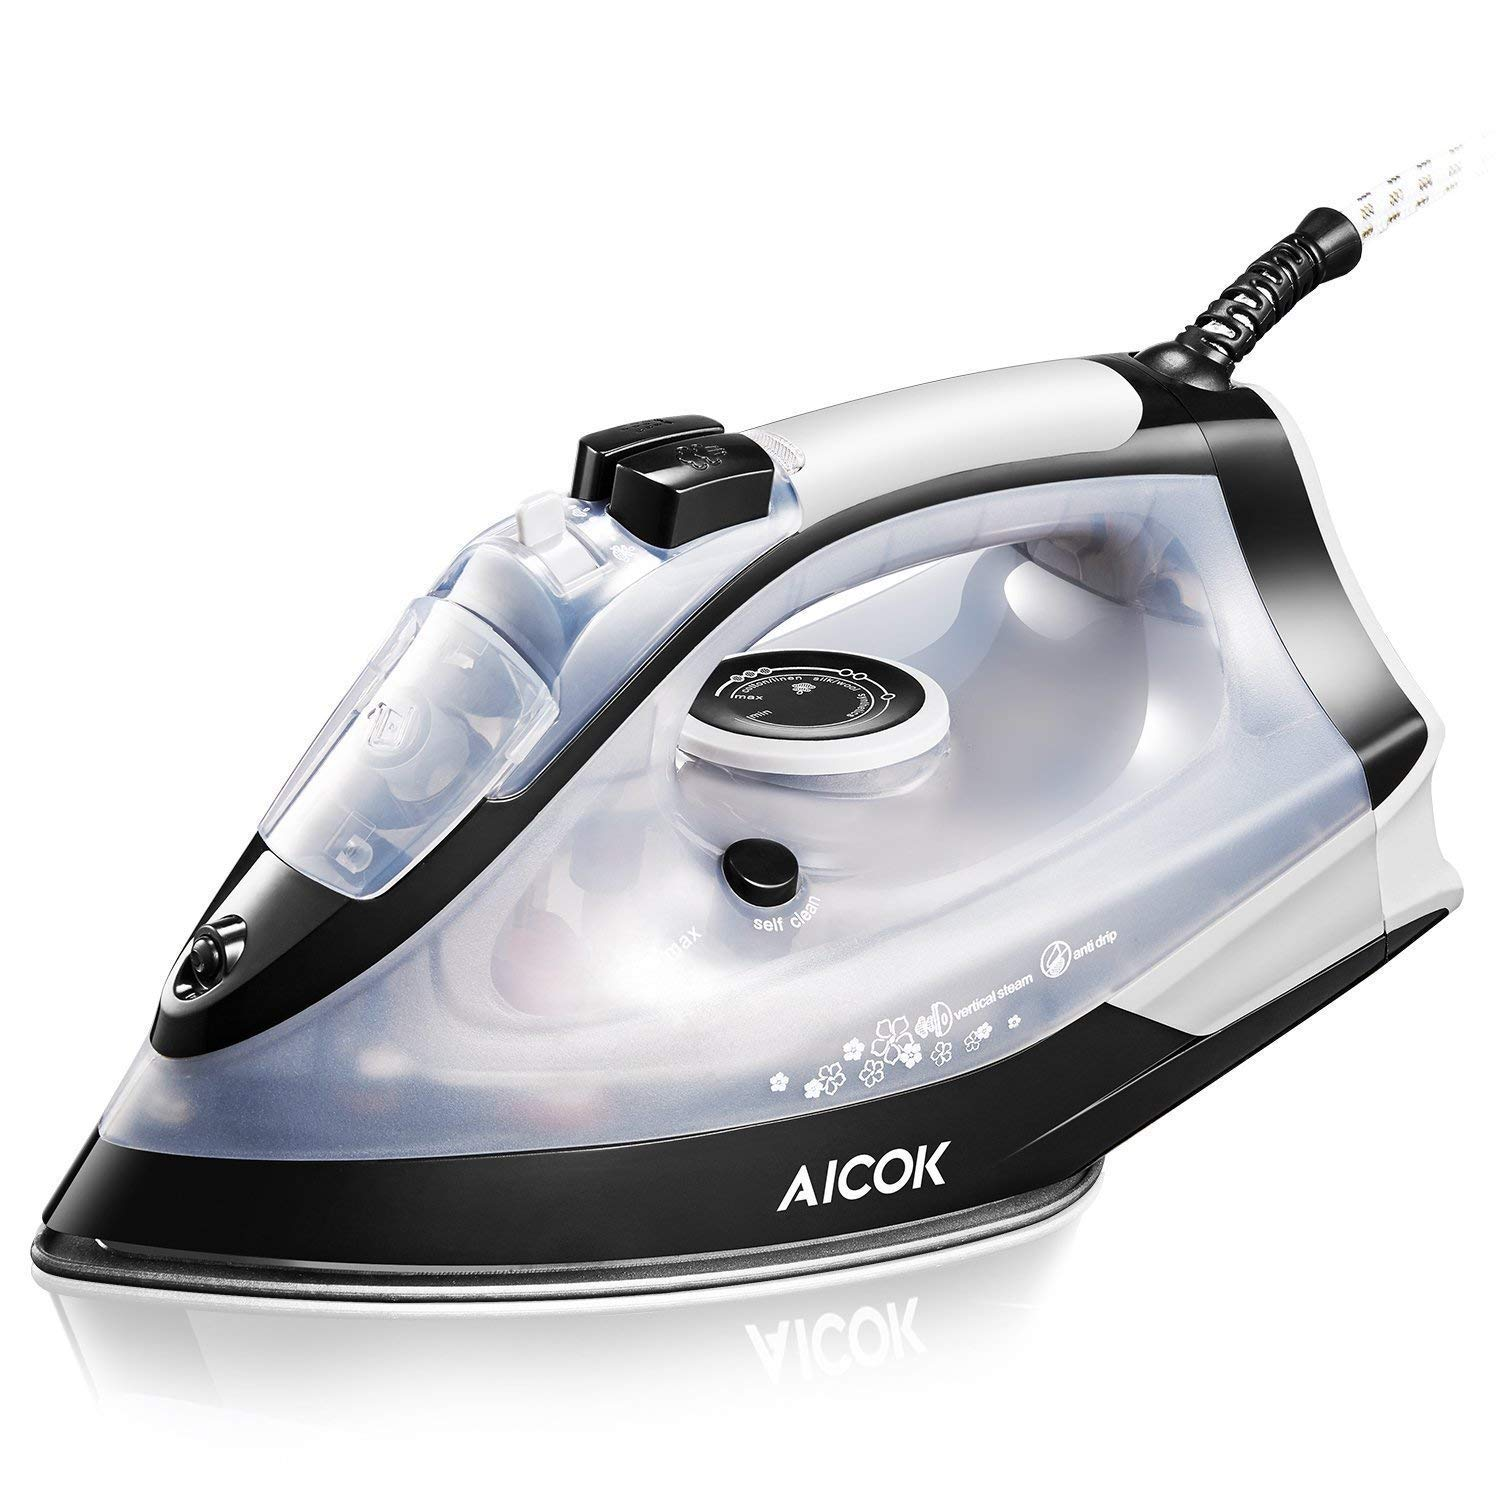 Steam Iron, Aicok Anti-Scale Iron, Vertical Steam Iron with Steam Boost and Non-Stick Soleplate, 5 Modes of Temperature Control, 2200w, Black and White